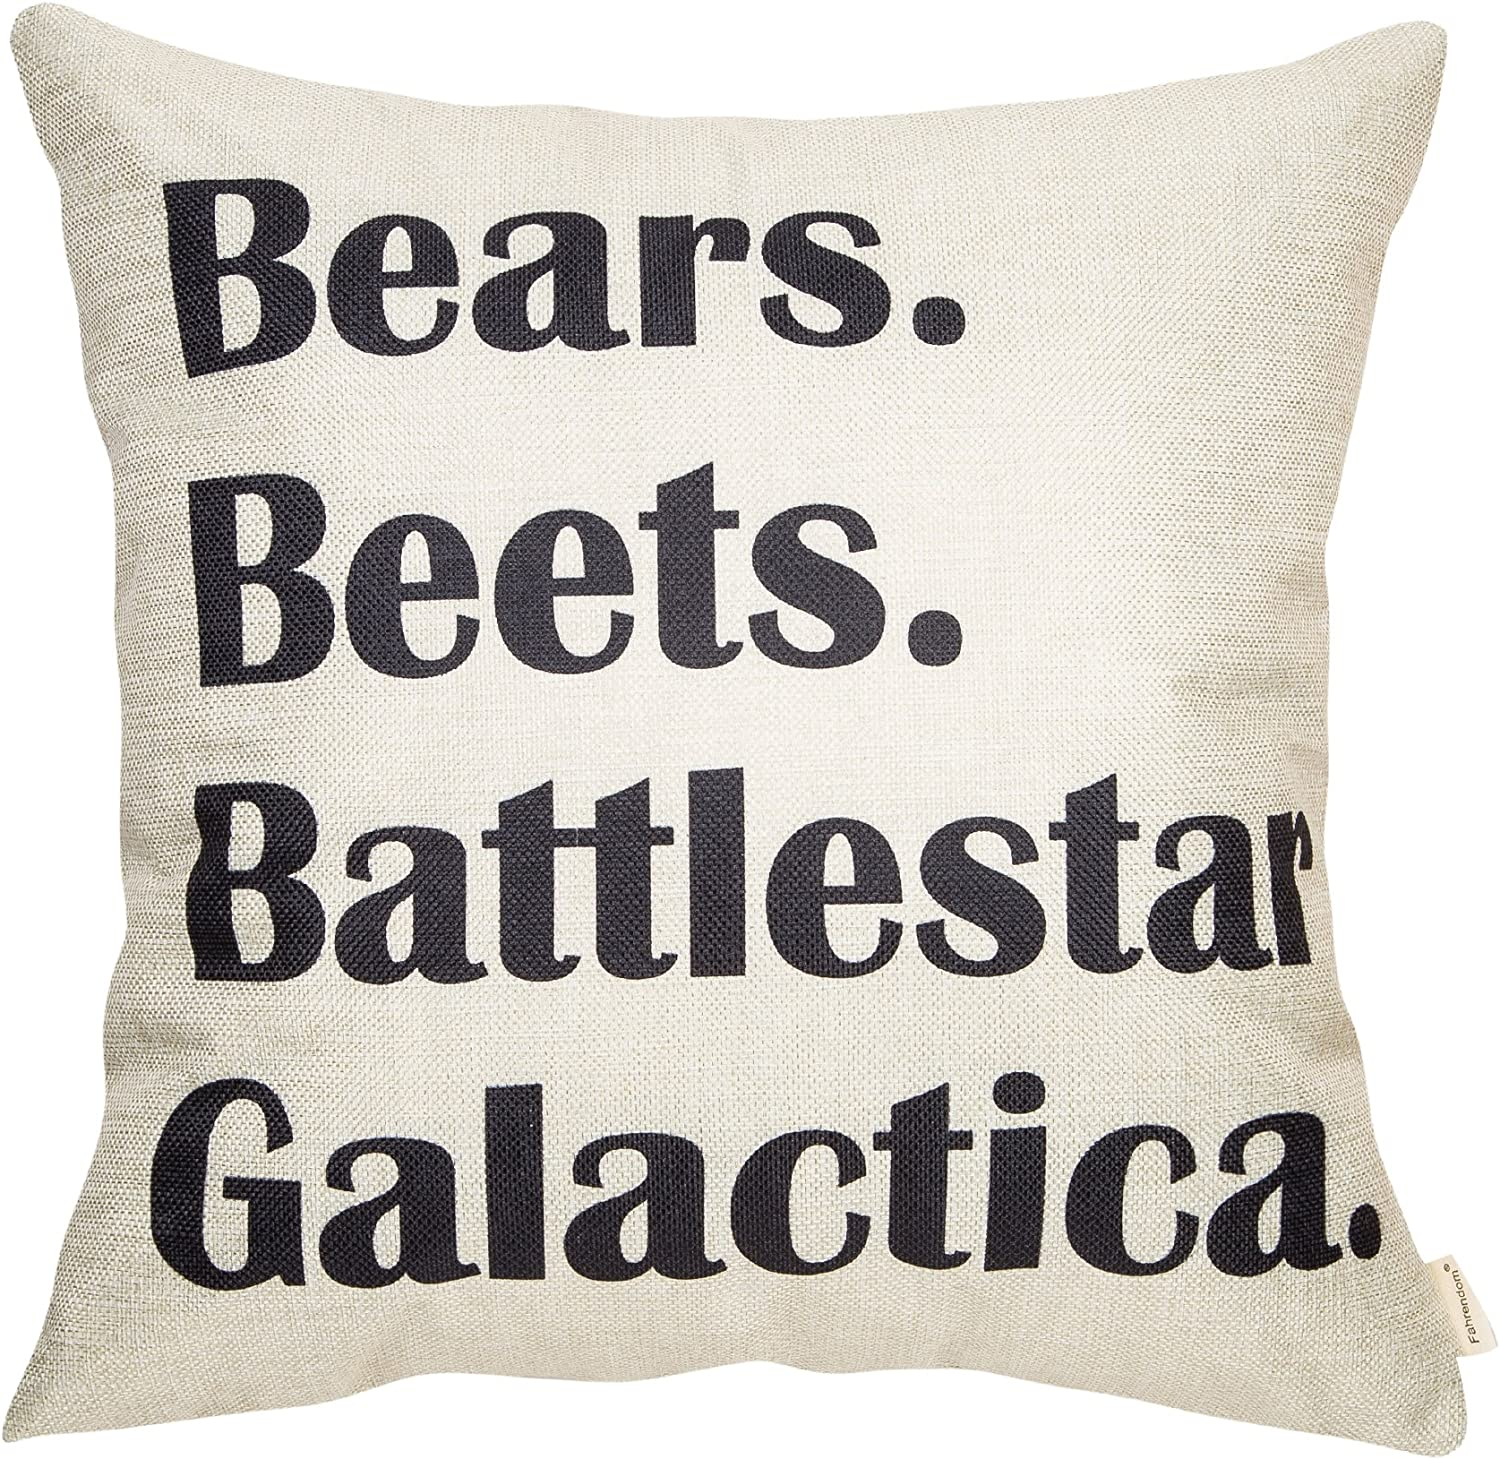 Battlestar Galactica License Plate Frame Perfect for Any The Office Fan! Bears Beets